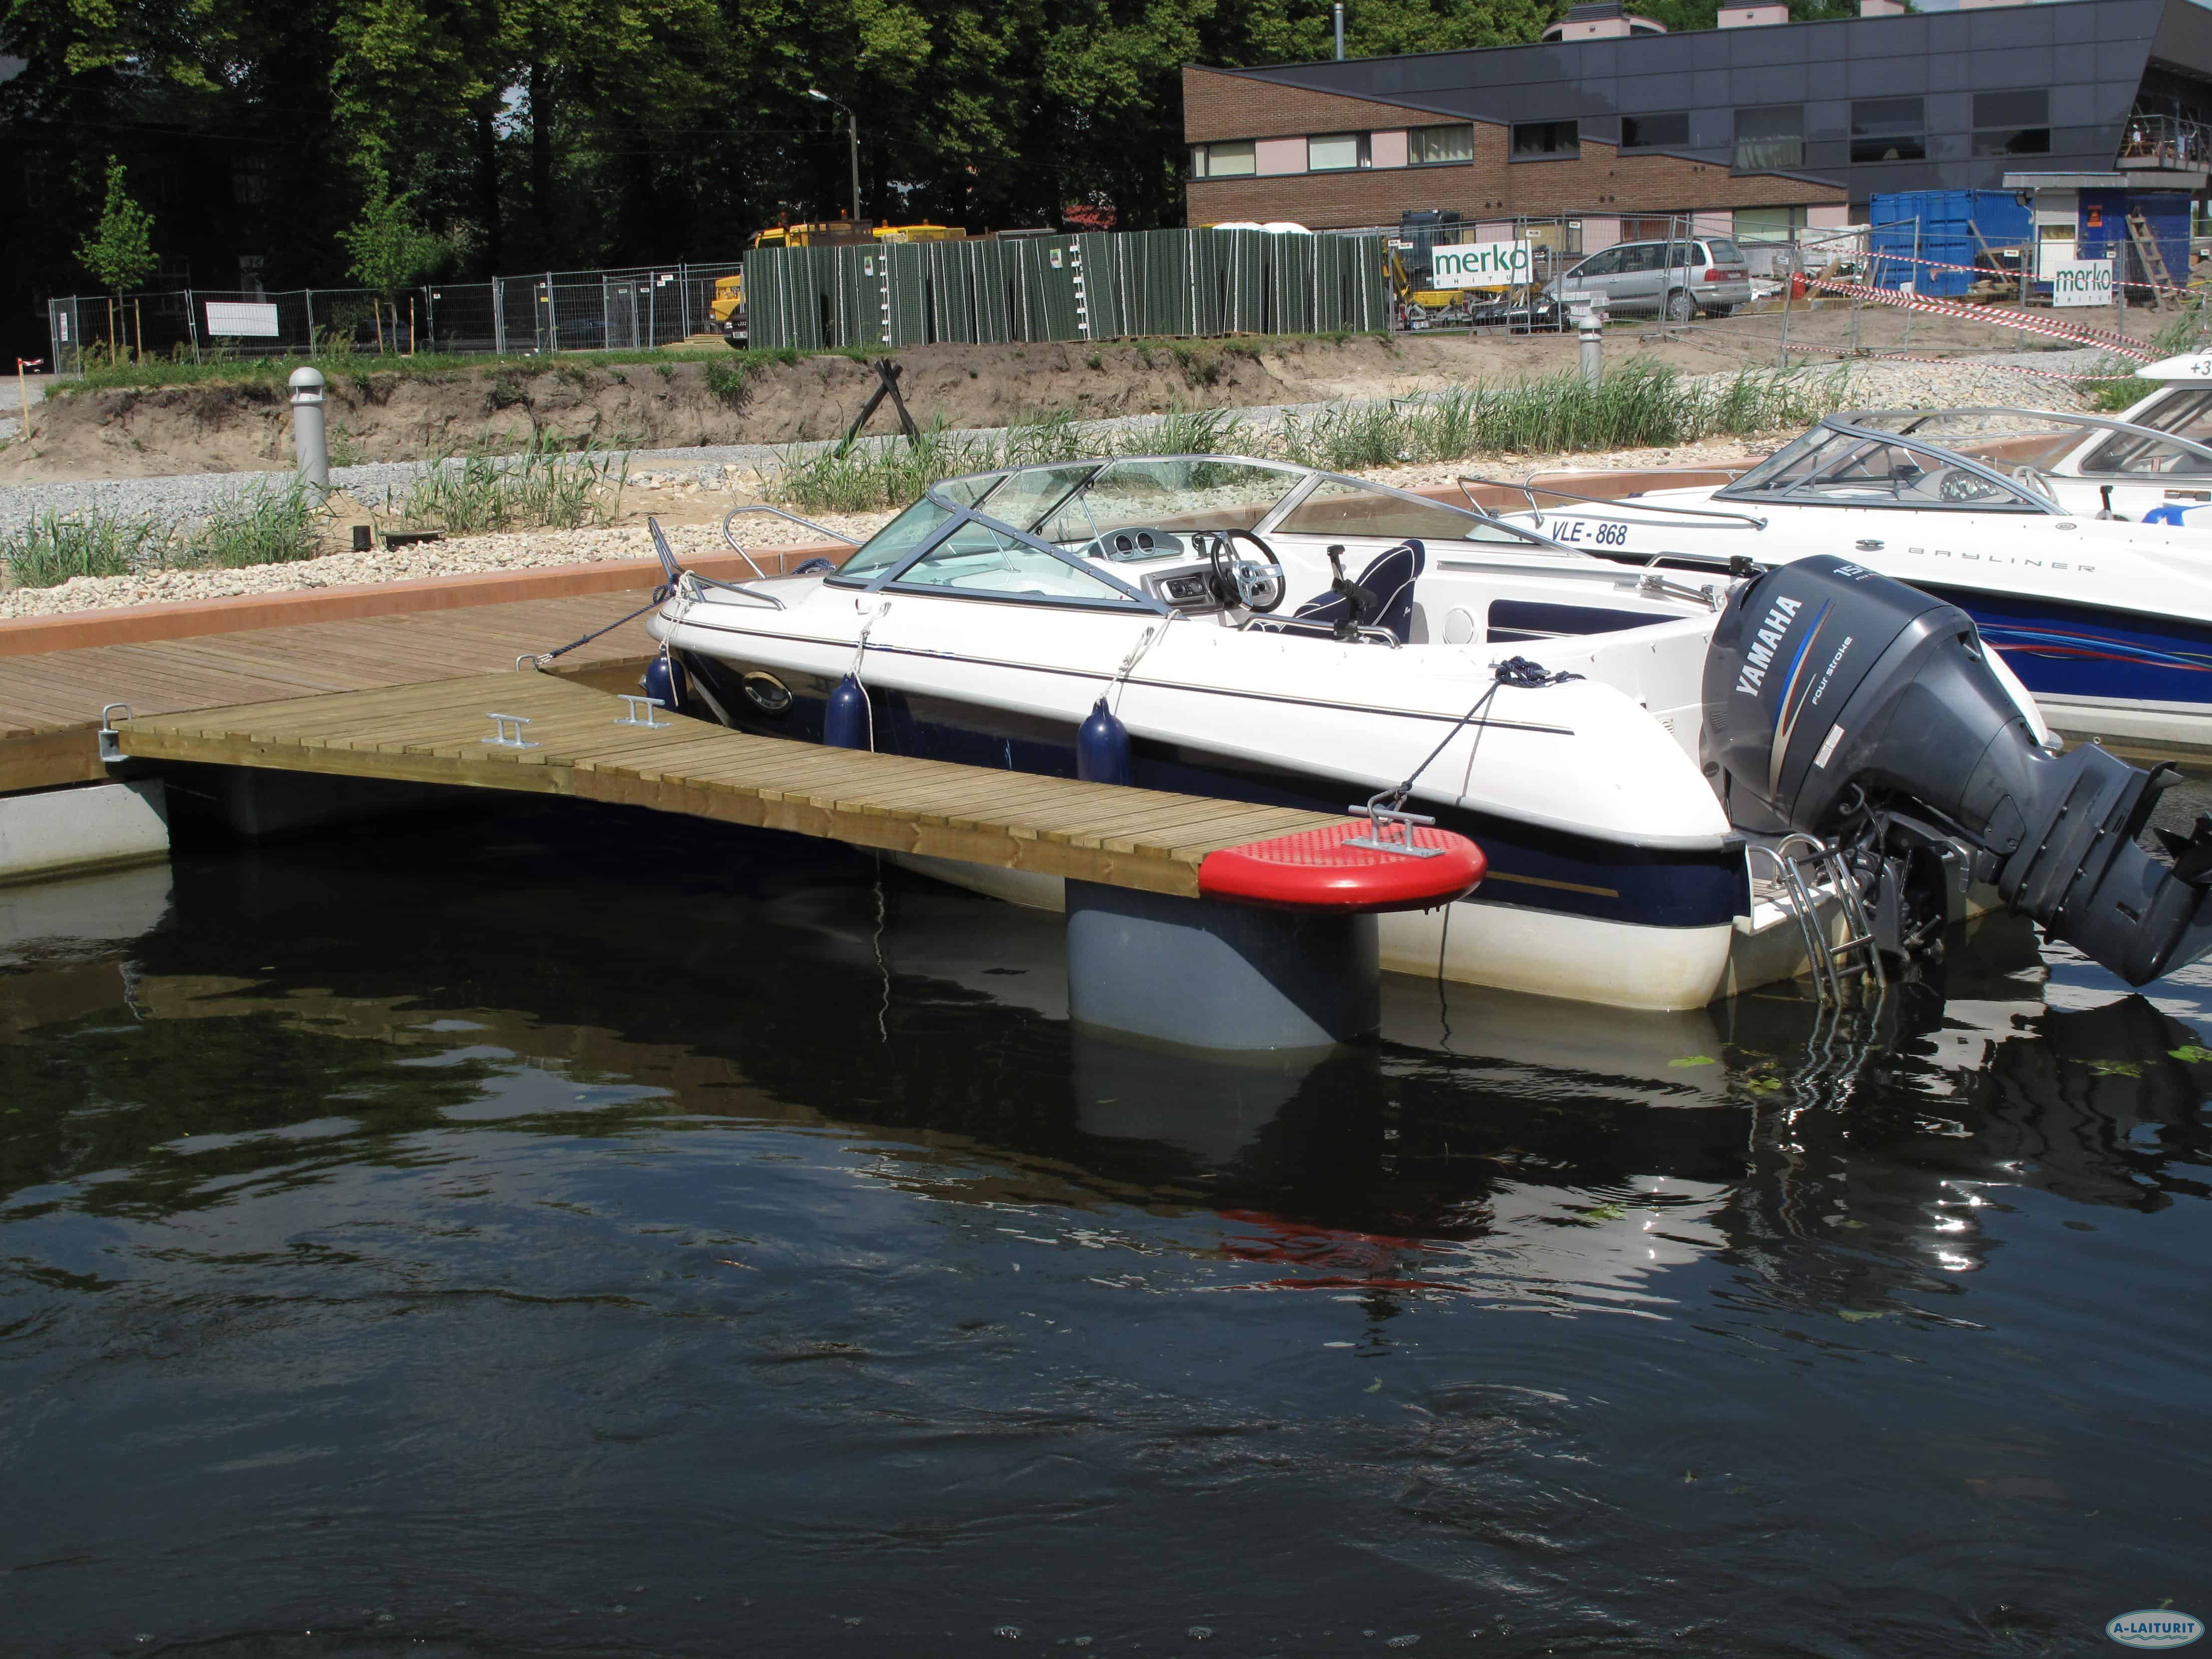 Walkable Mooring finger 4 x 0.7m, 1x300L